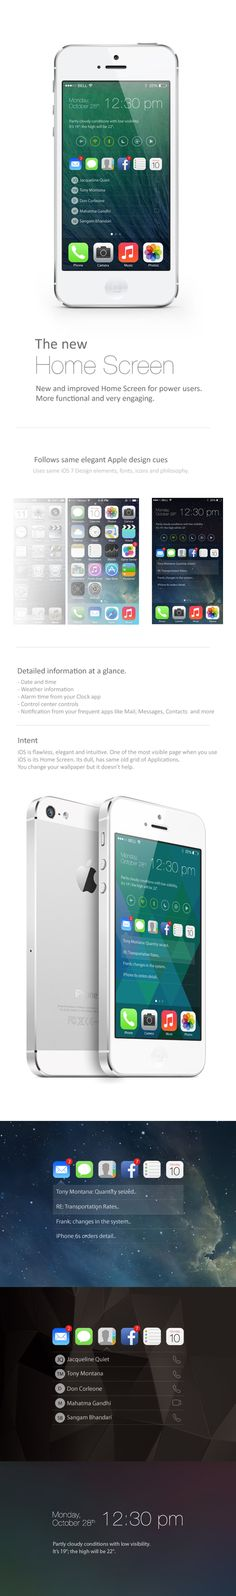 iOS Home Screen Concept by Sangam Bhandari, via Behance